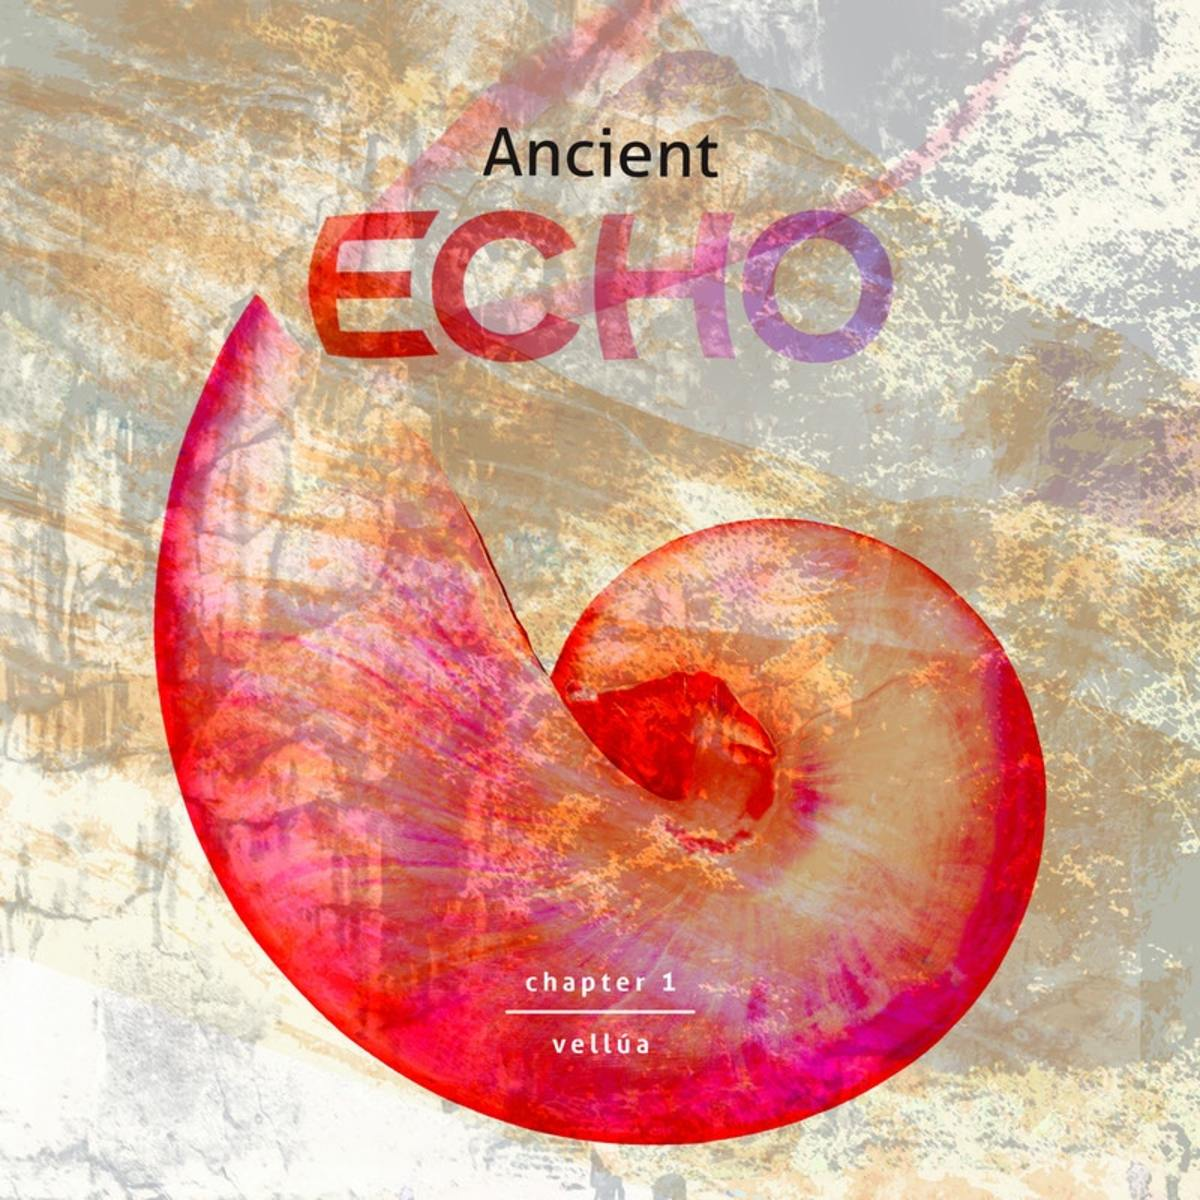 world-fusion-ep-review-ancient-echo-part-1-by-vella